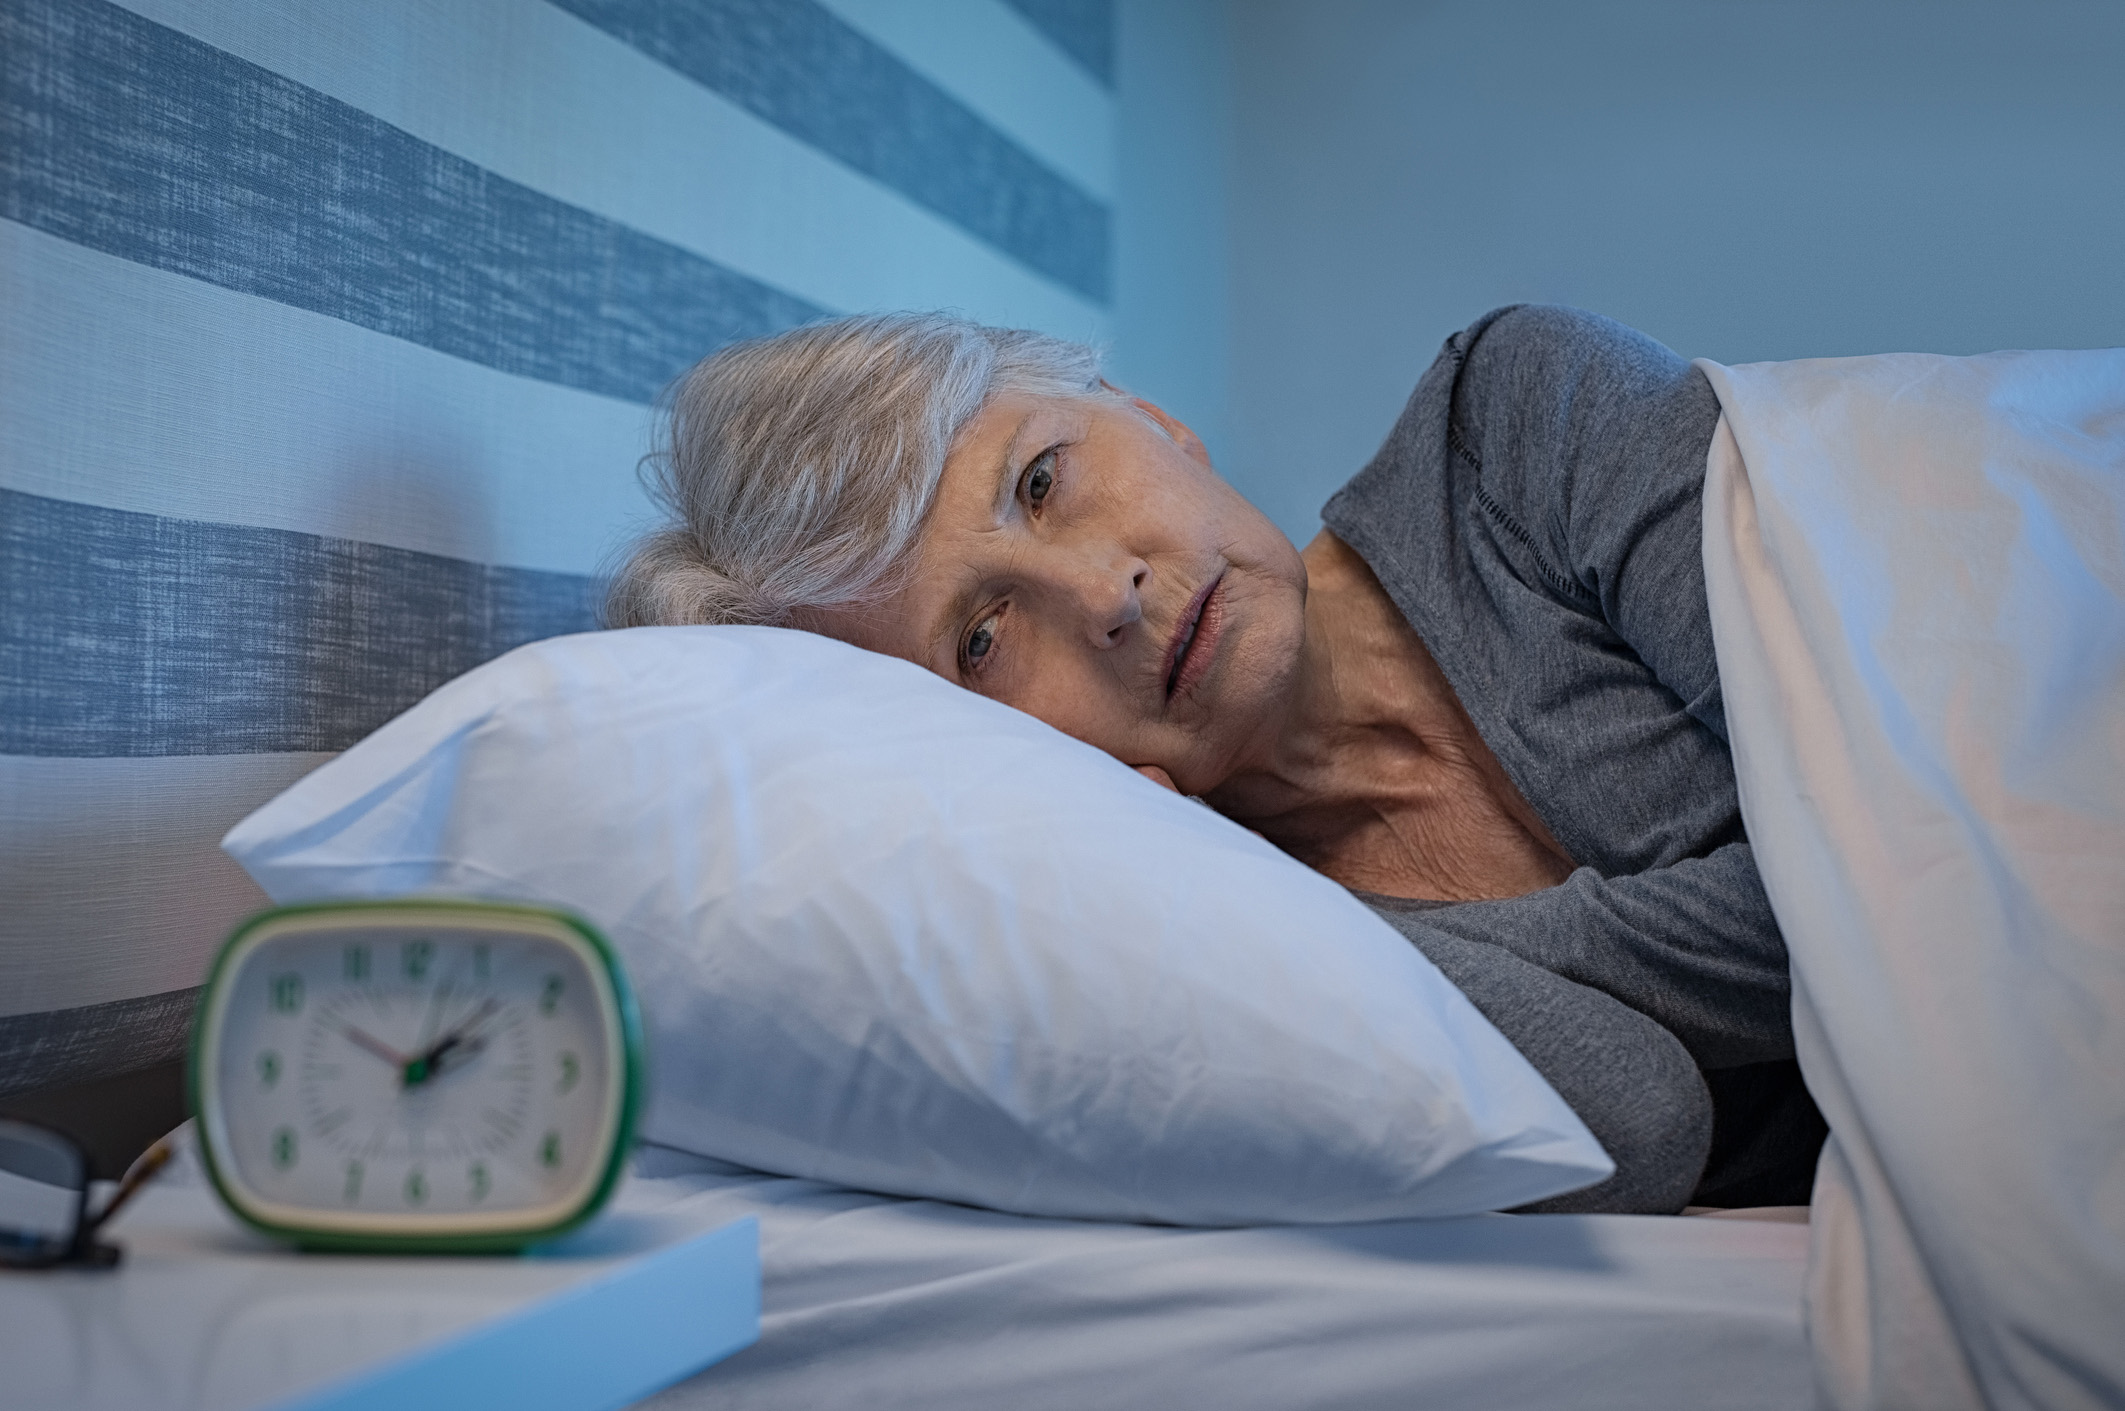 Study finds irregular sleep patterns double the risk of cardiovascular disease in older adults